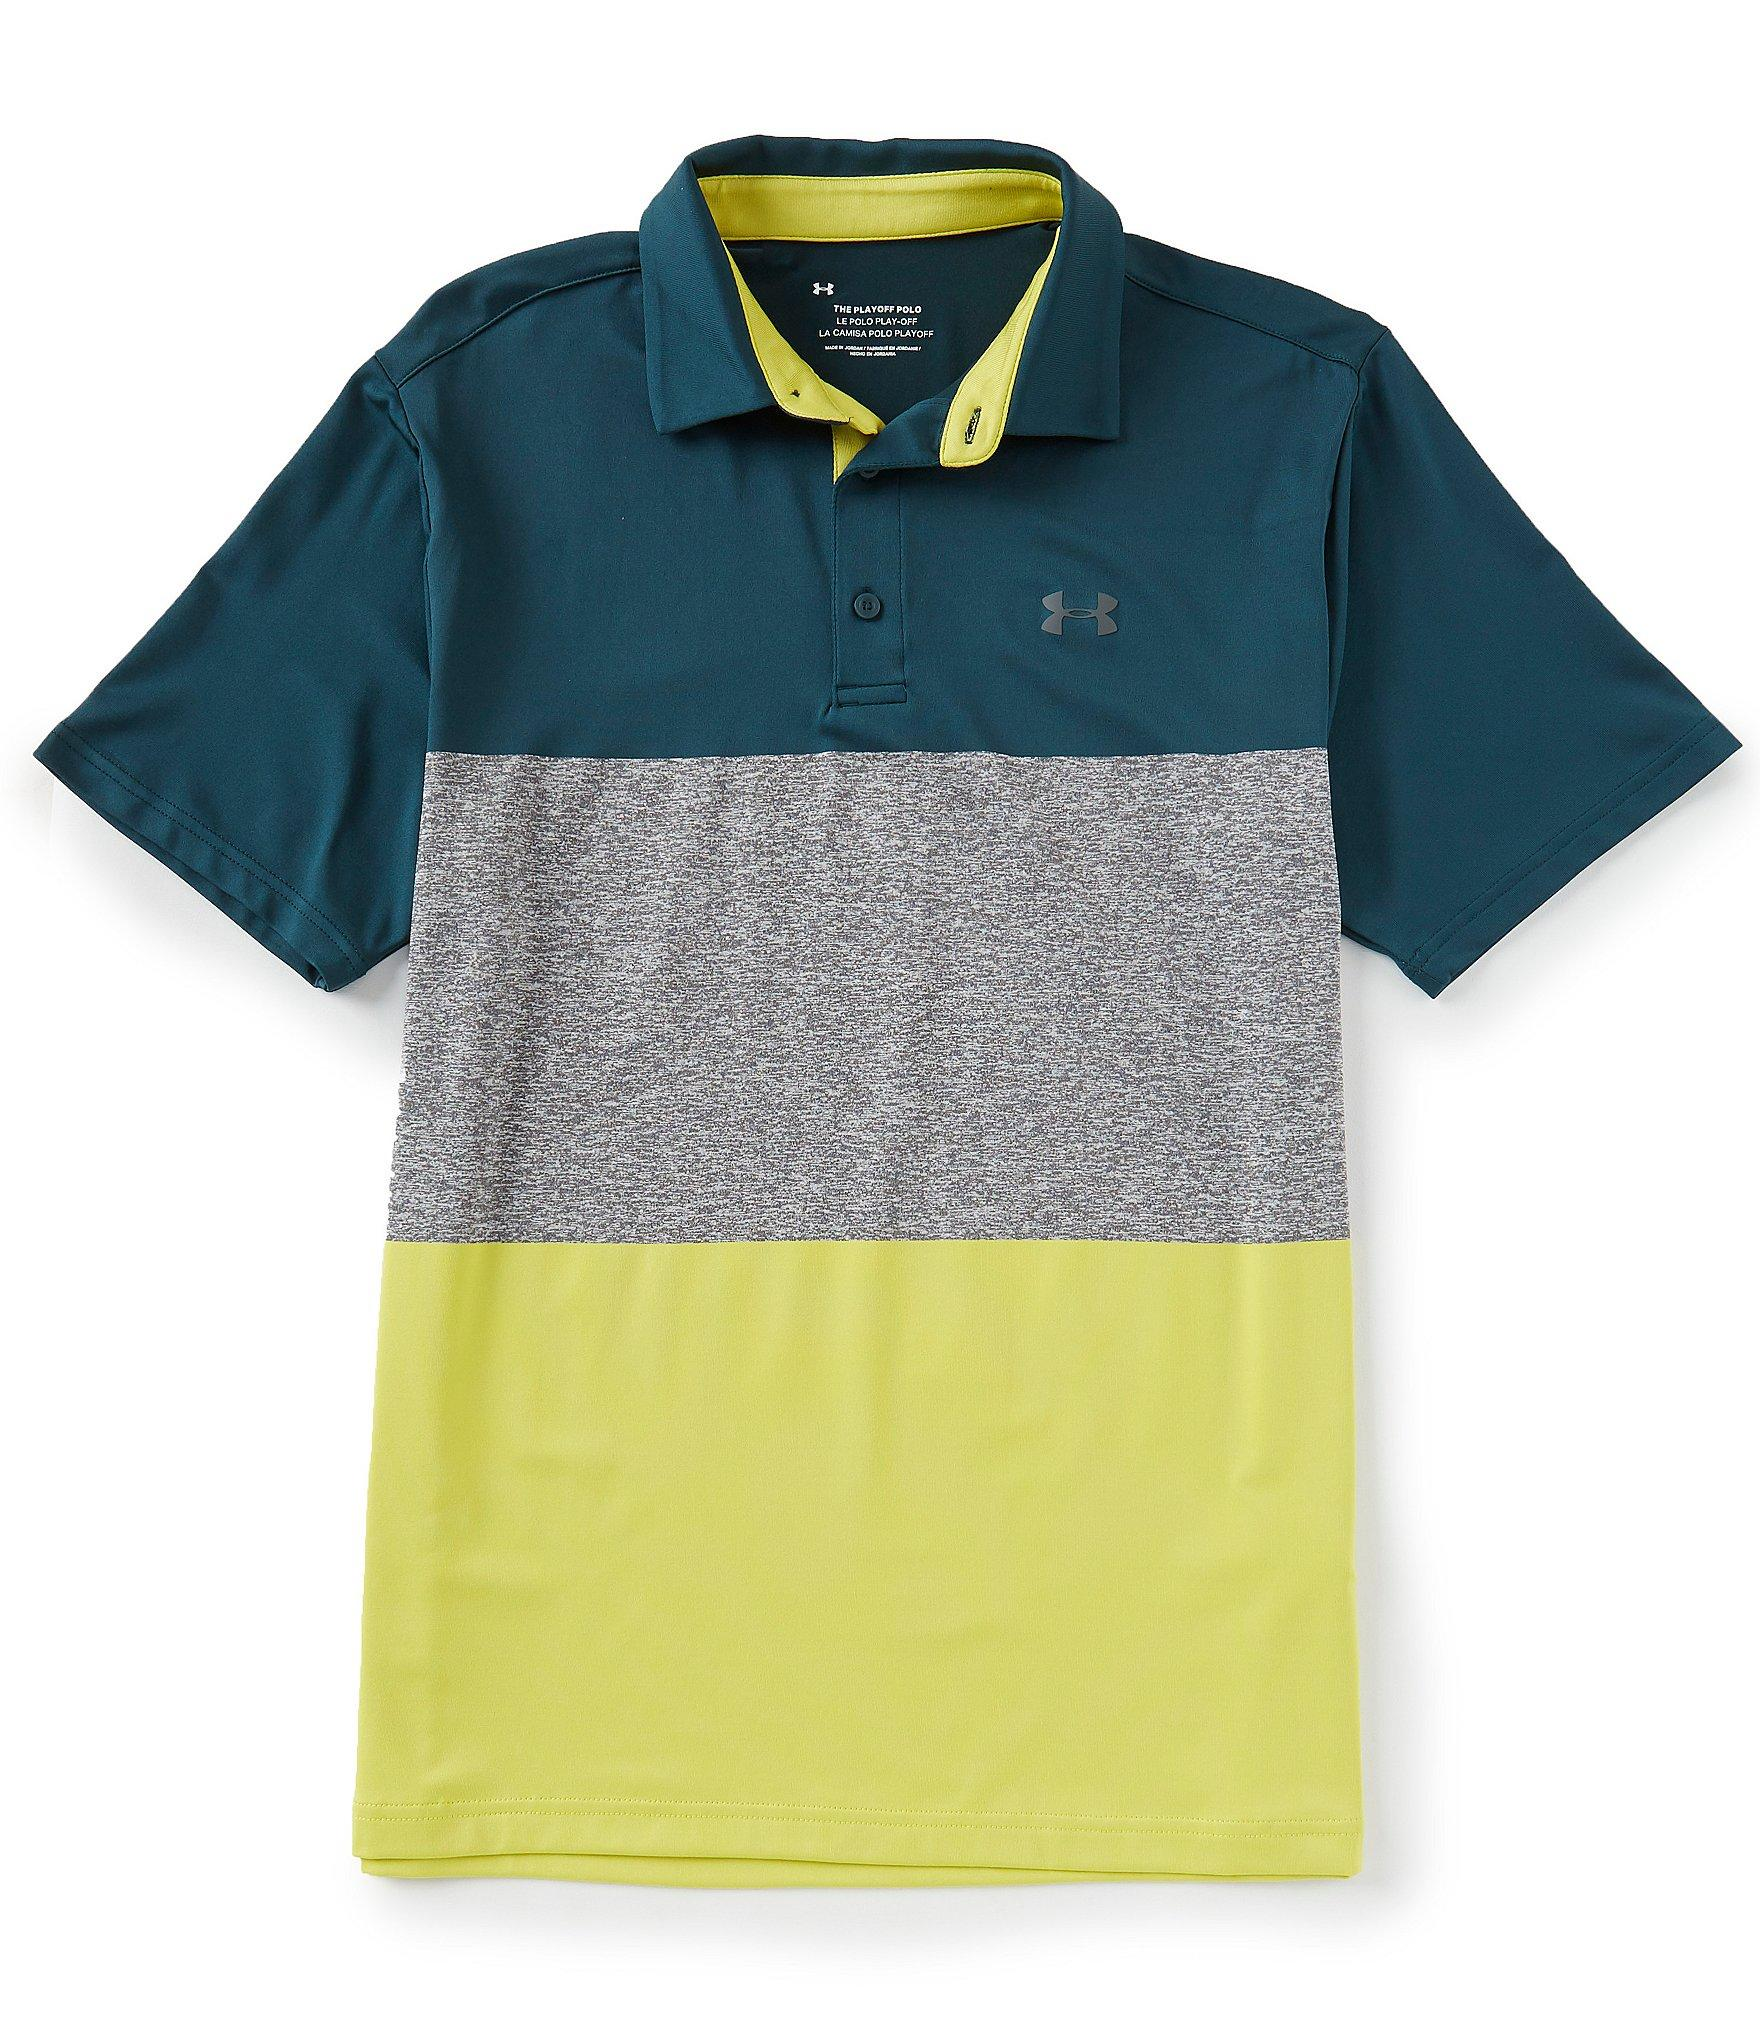 e2dedb6ecc90ae Lyst - Under Armour Golf Short-sleeve Playoff Polo 2.0 in Gray for Men